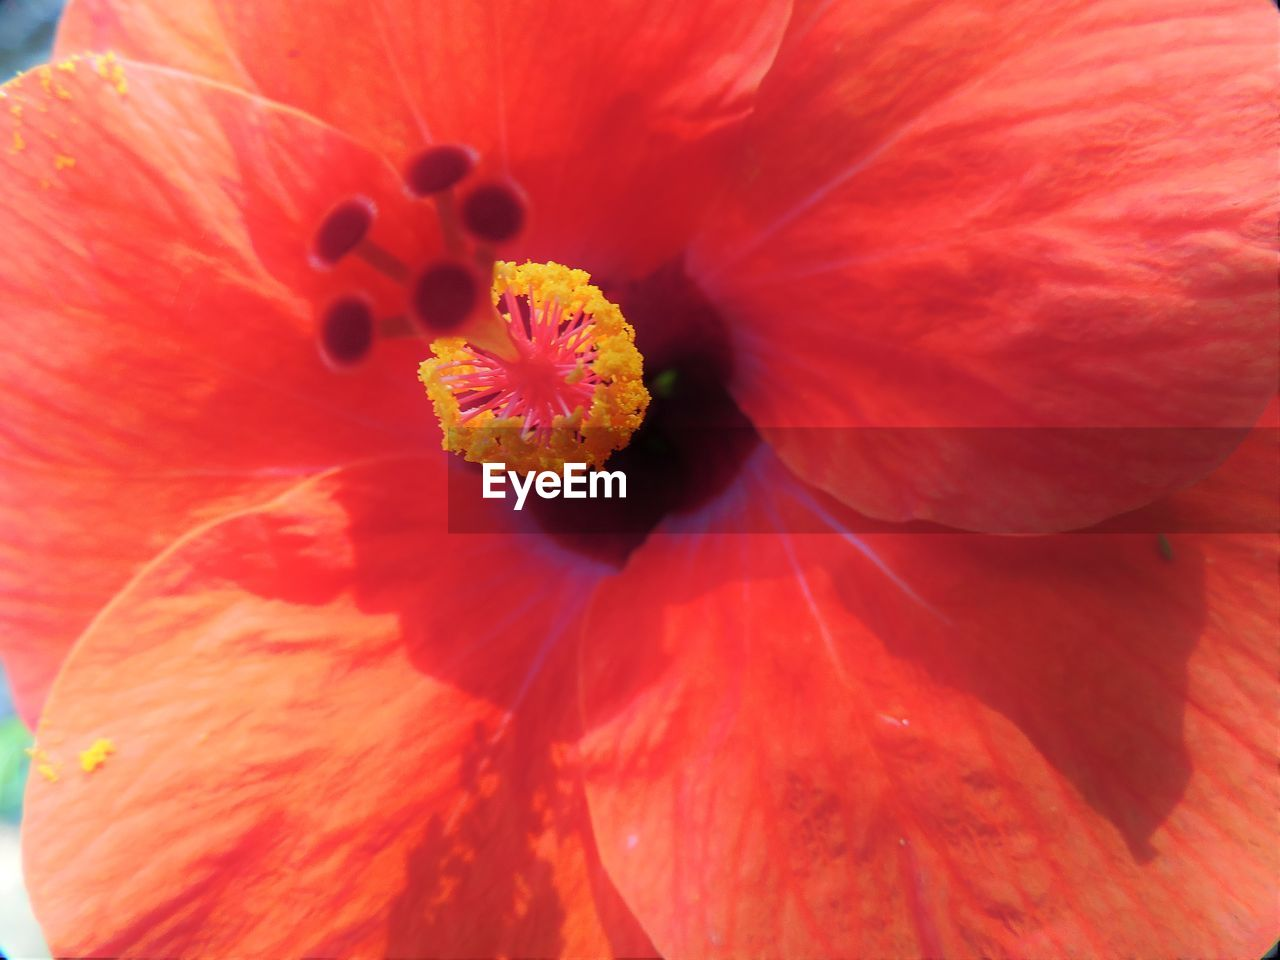 flower, petal, flower head, fragility, freshness, beauty in nature, pollen, nature, full frame, close-up, stamen, backgrounds, no people, hibiscus, red, growth, day, blooming, outdoors